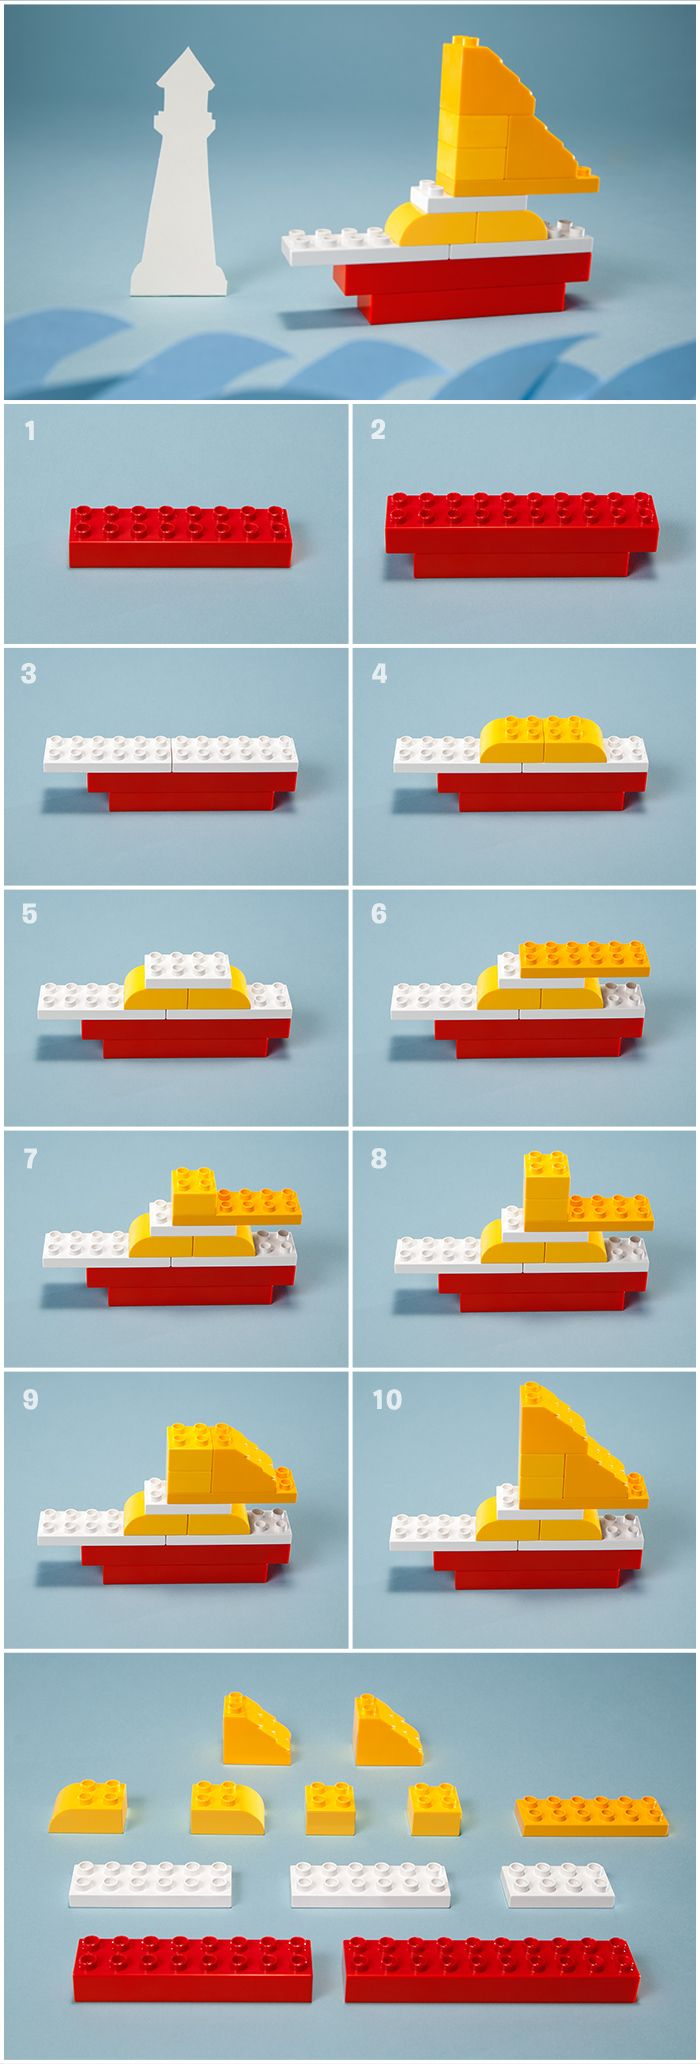 Atmosphere getting tense with your preschooler? Build this LEGO® DUPLO® DIY sailboat together to steer you out of troubled waters.